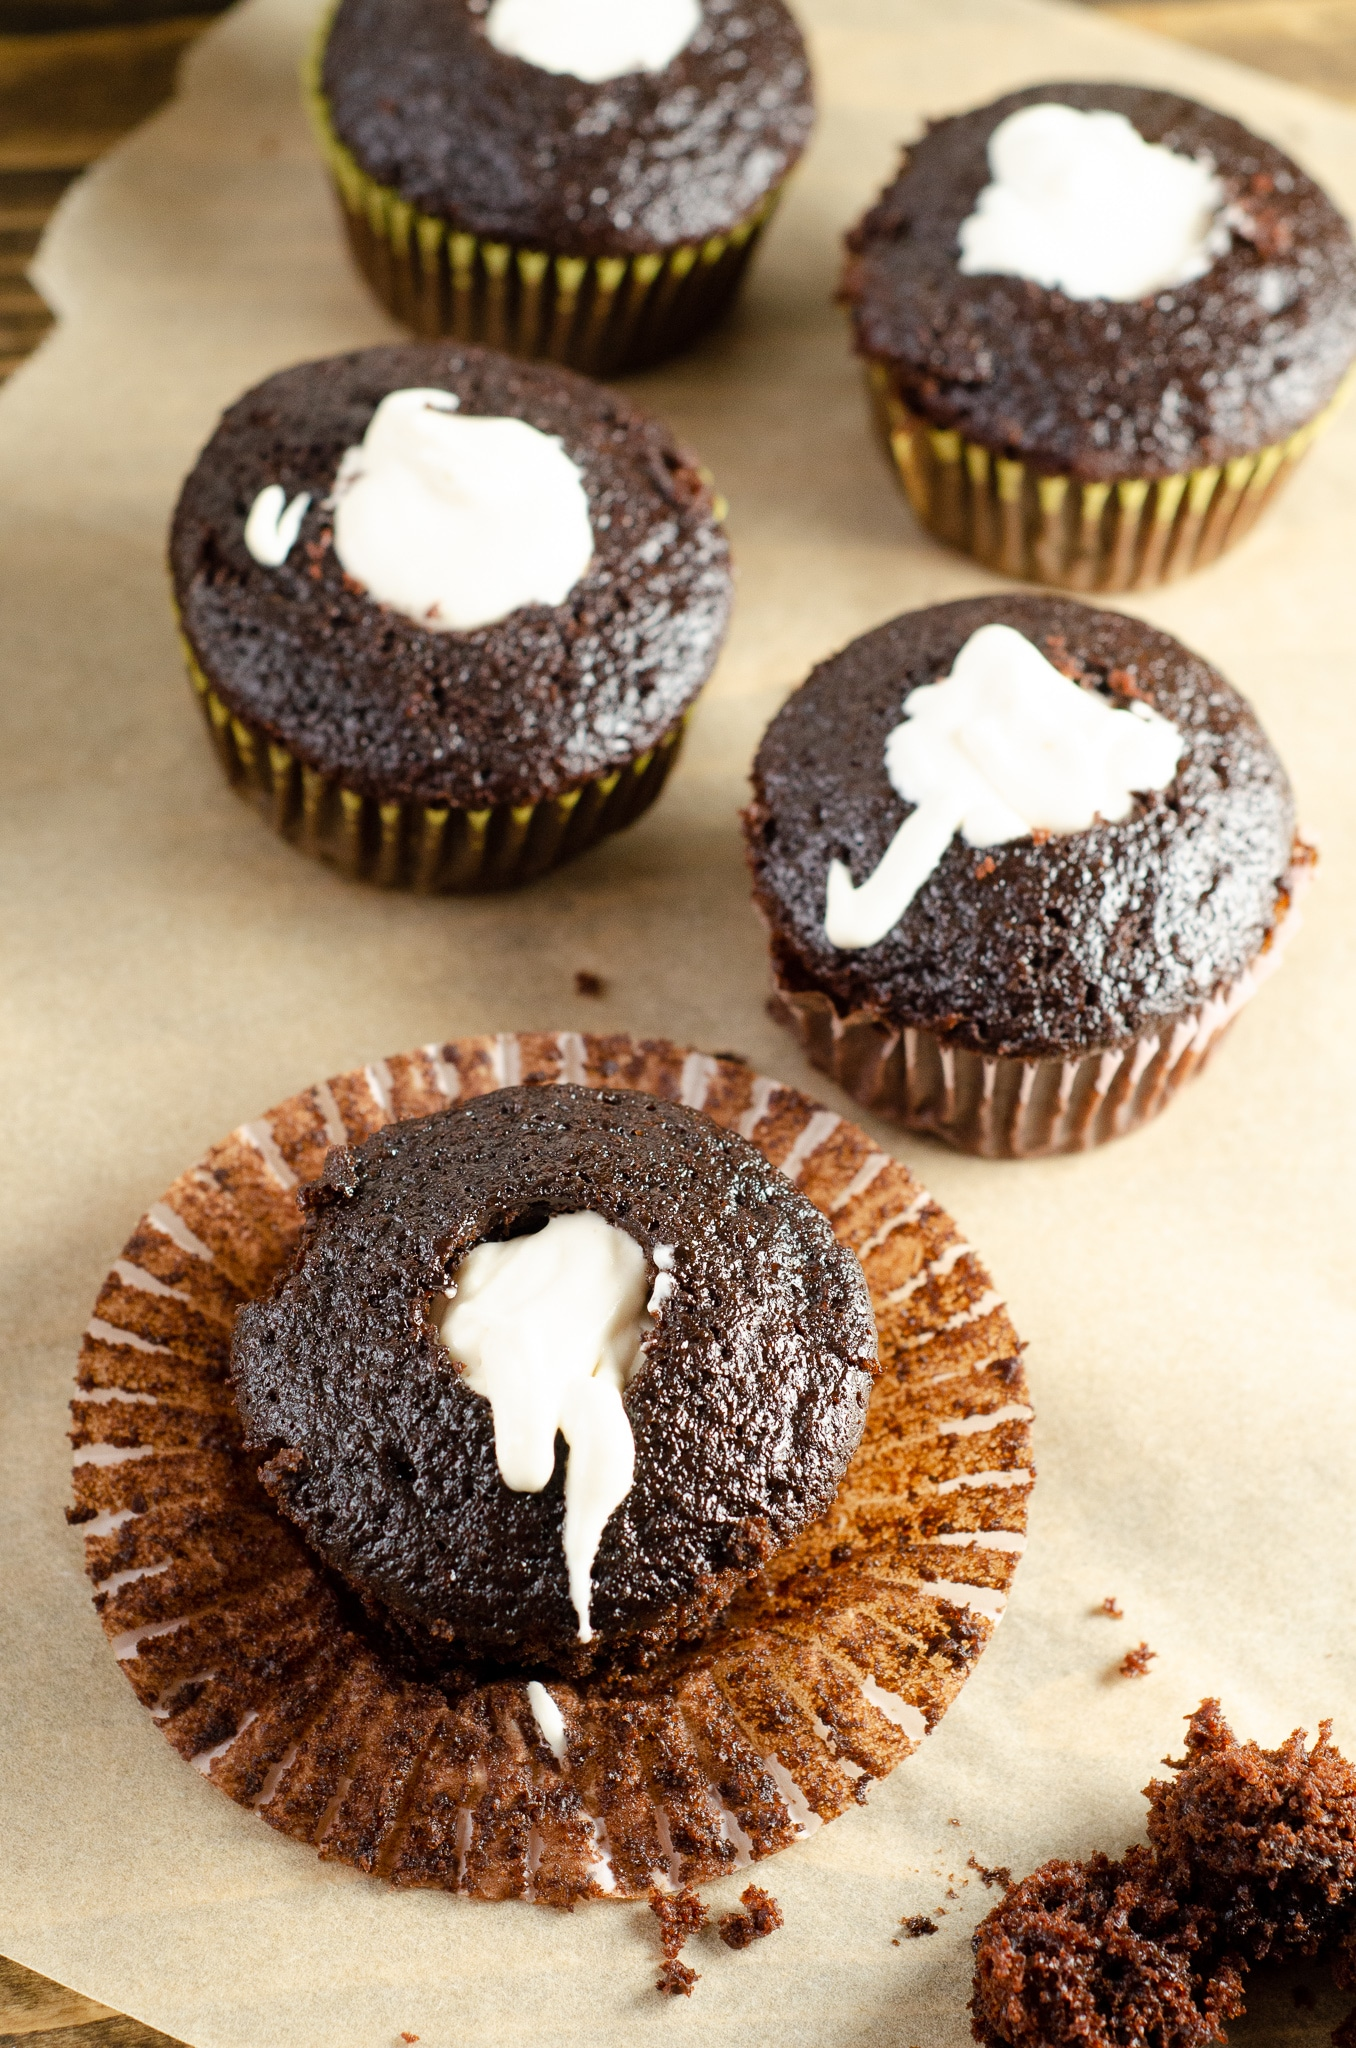 Chocolate Cupcakes Marshamallow Creme Filling. Sink your teeth into a childhood favorite cupcake that is as easy to bake as it is to eat. My Chocolate cupcakes with Chocolate Buttercream frosting and marshmallow creme filling will make the kid in you cheer.